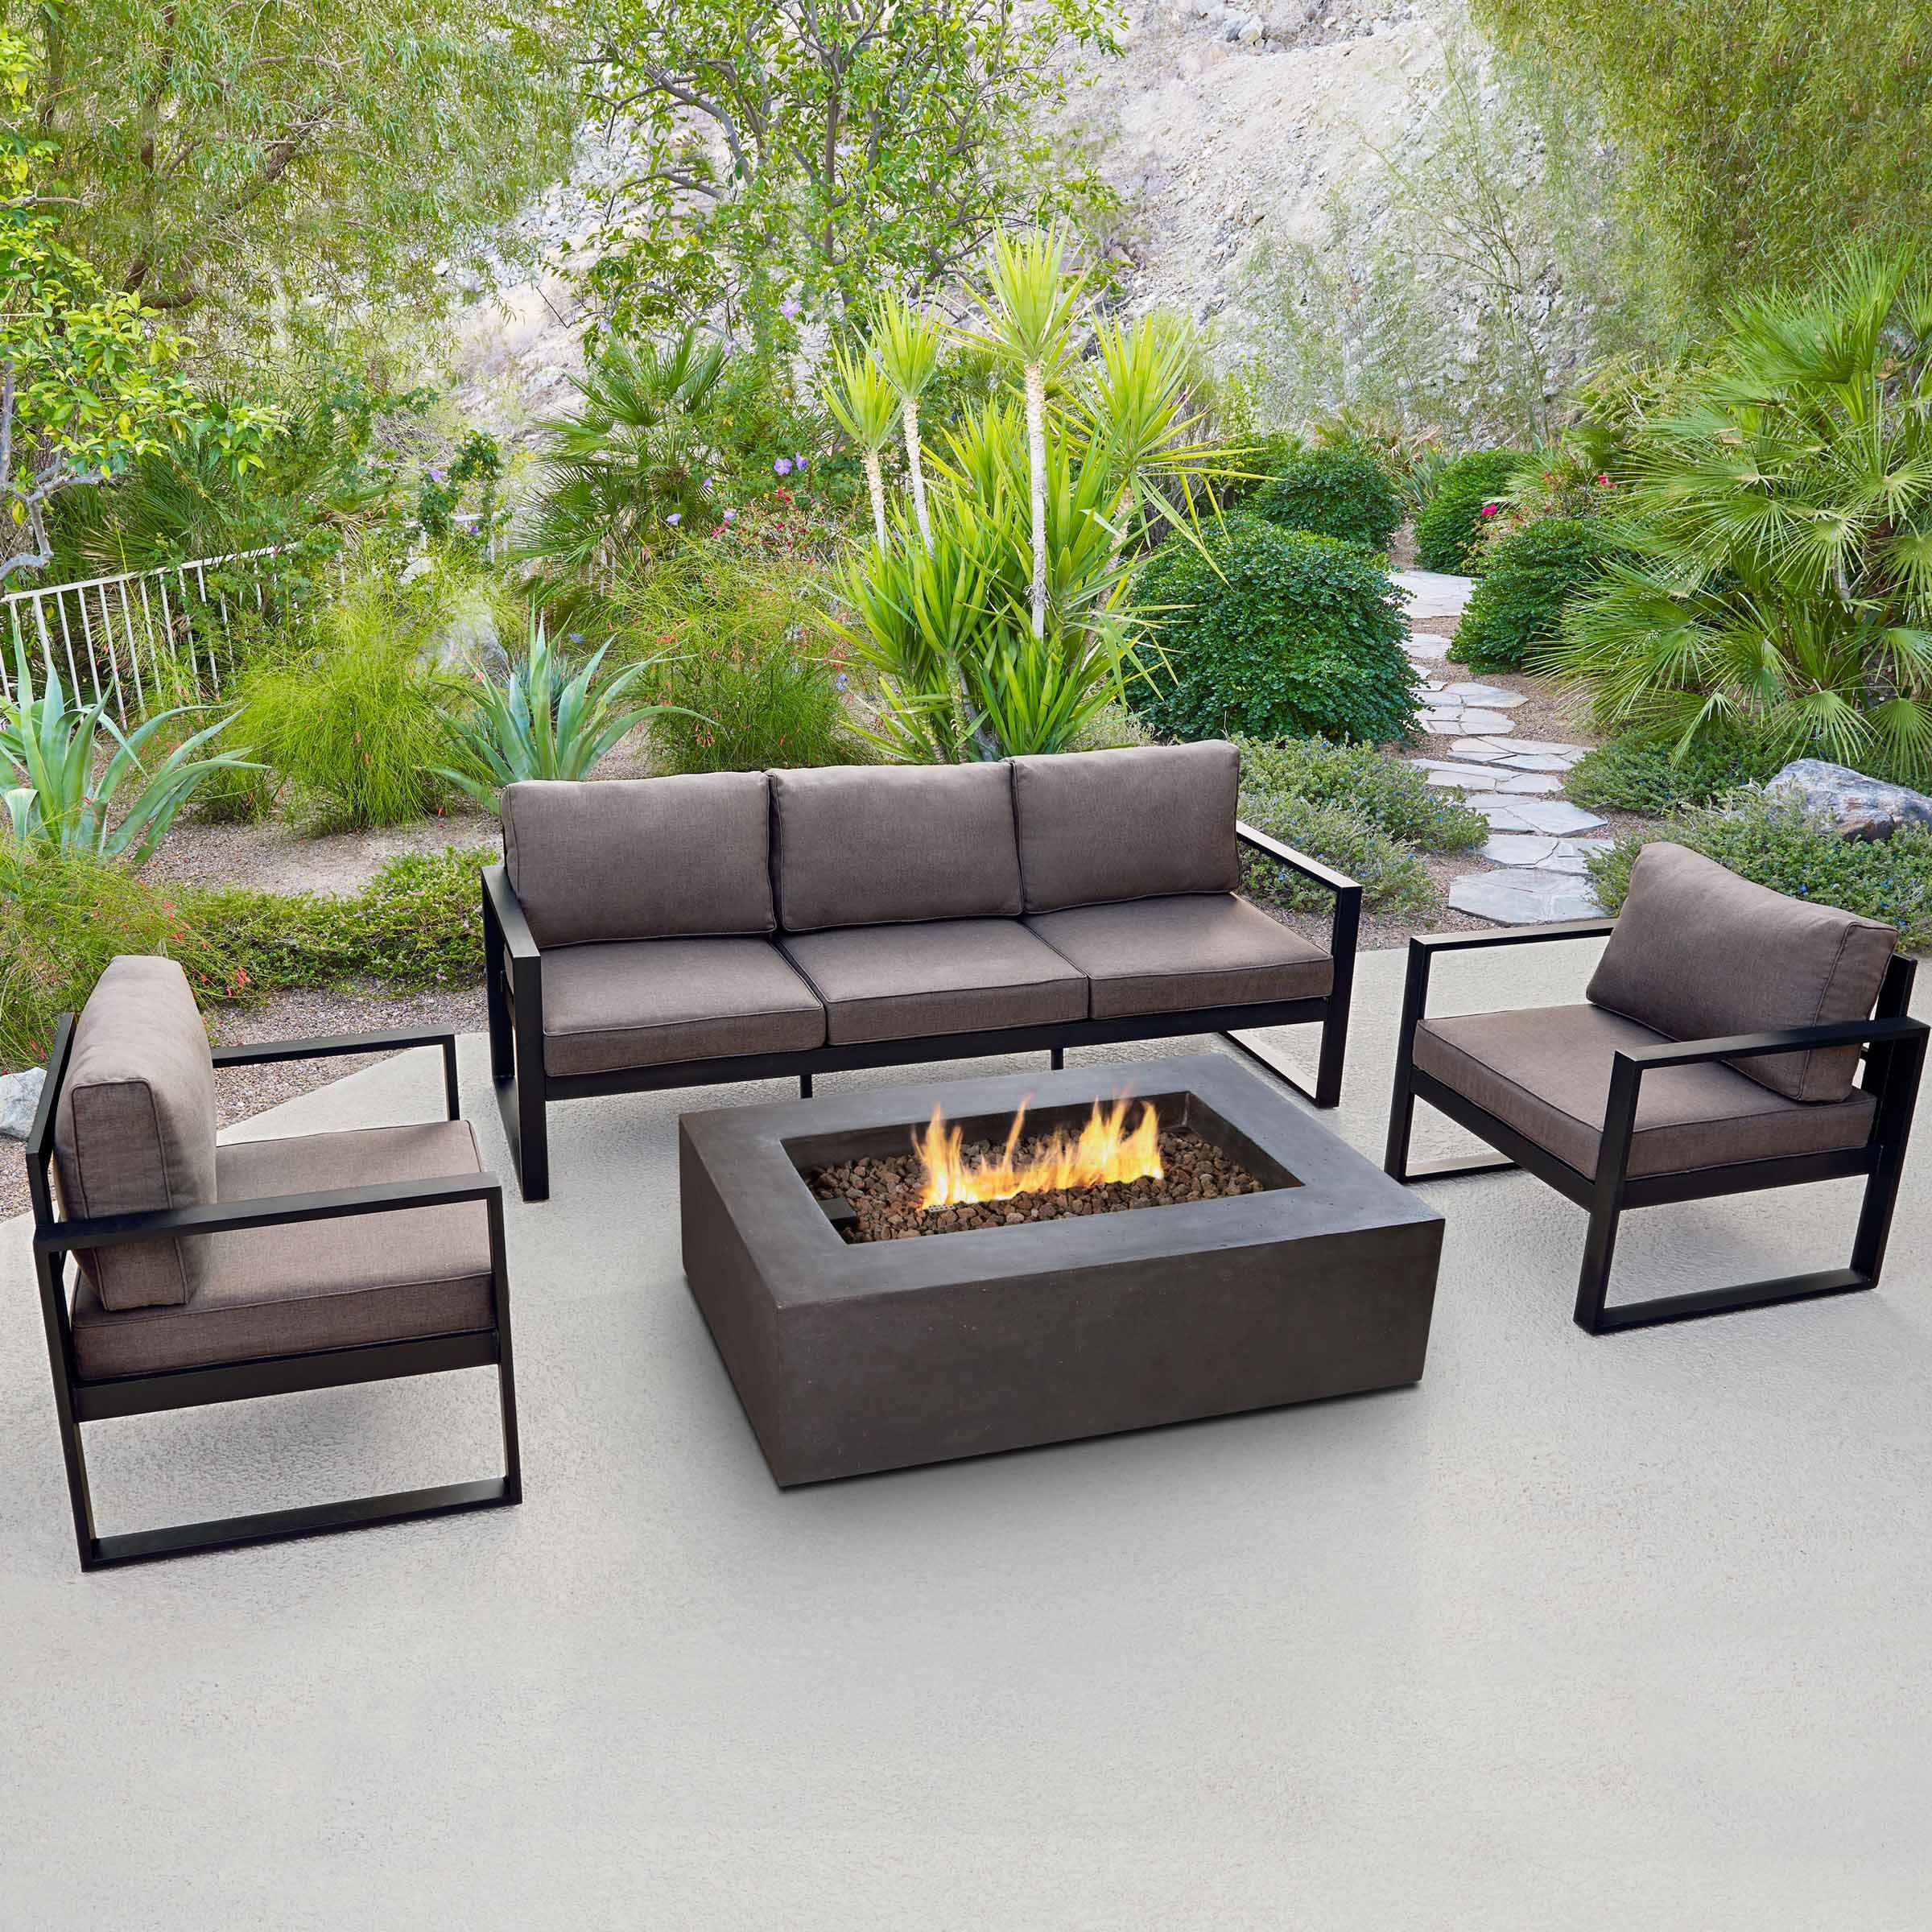 Muebles Terraza Pvc Baltic Patio Sofa With Cushions Mio Muebles Muebles